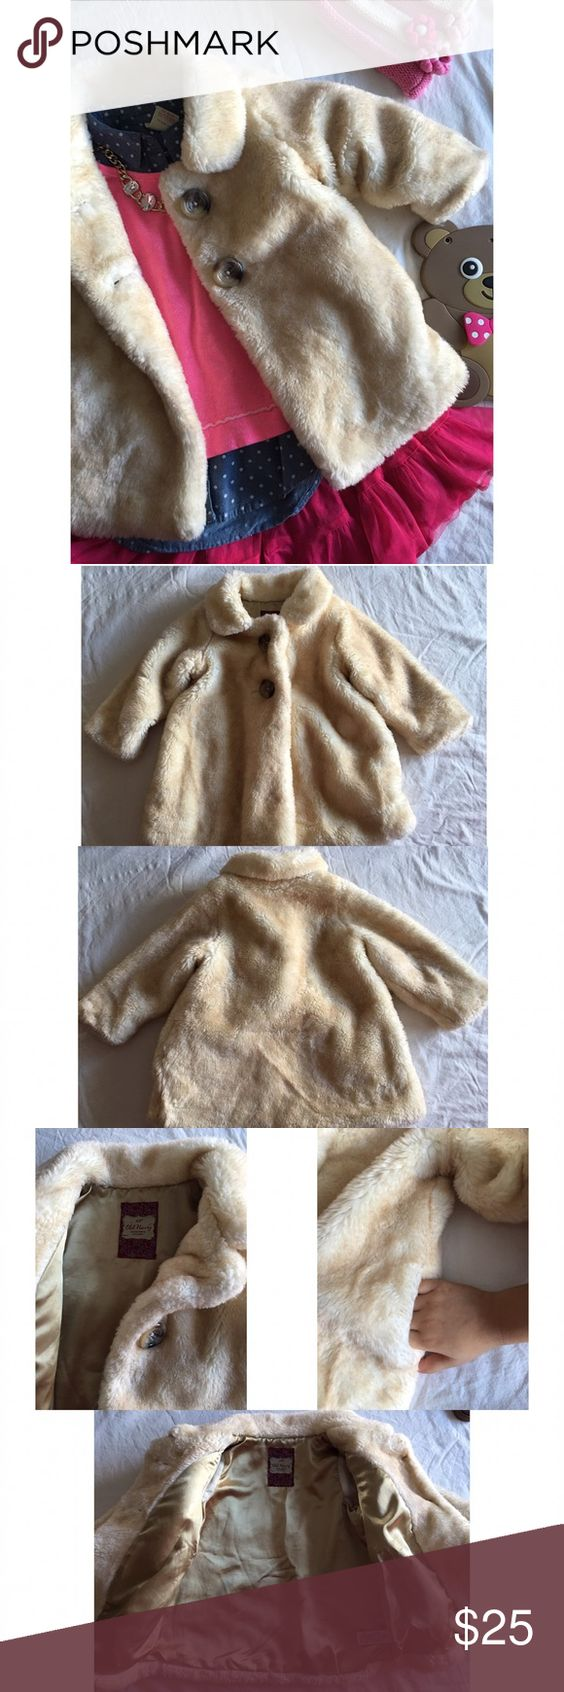 Kids Old Navy faux fur coat Kids Old Navy faux fur coat. Warm and cute. Pockets on the sides. Slightly worn, as shown. No tears, no stains. Size: 2t Old Navy Jackets & Coats